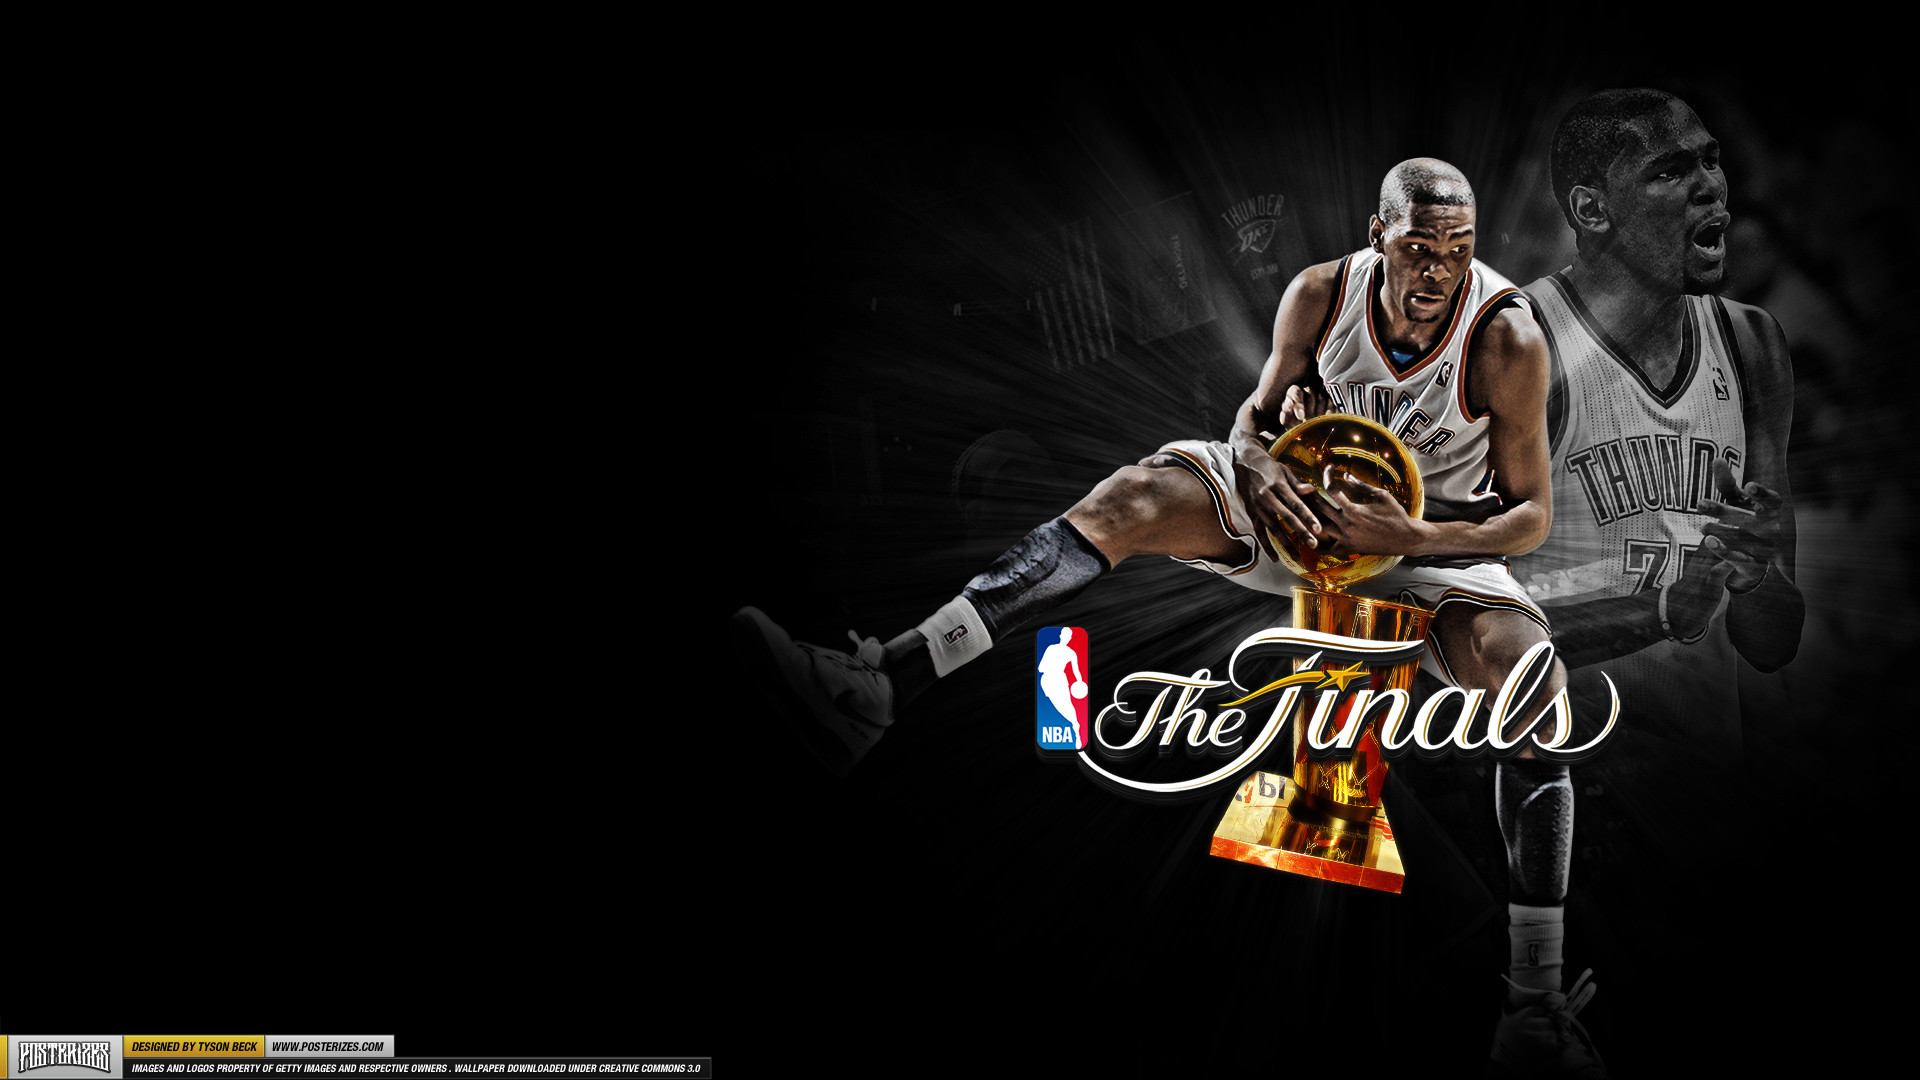 wallpaper, nba, durant, trophy, twitter, kevin, hunting, online .